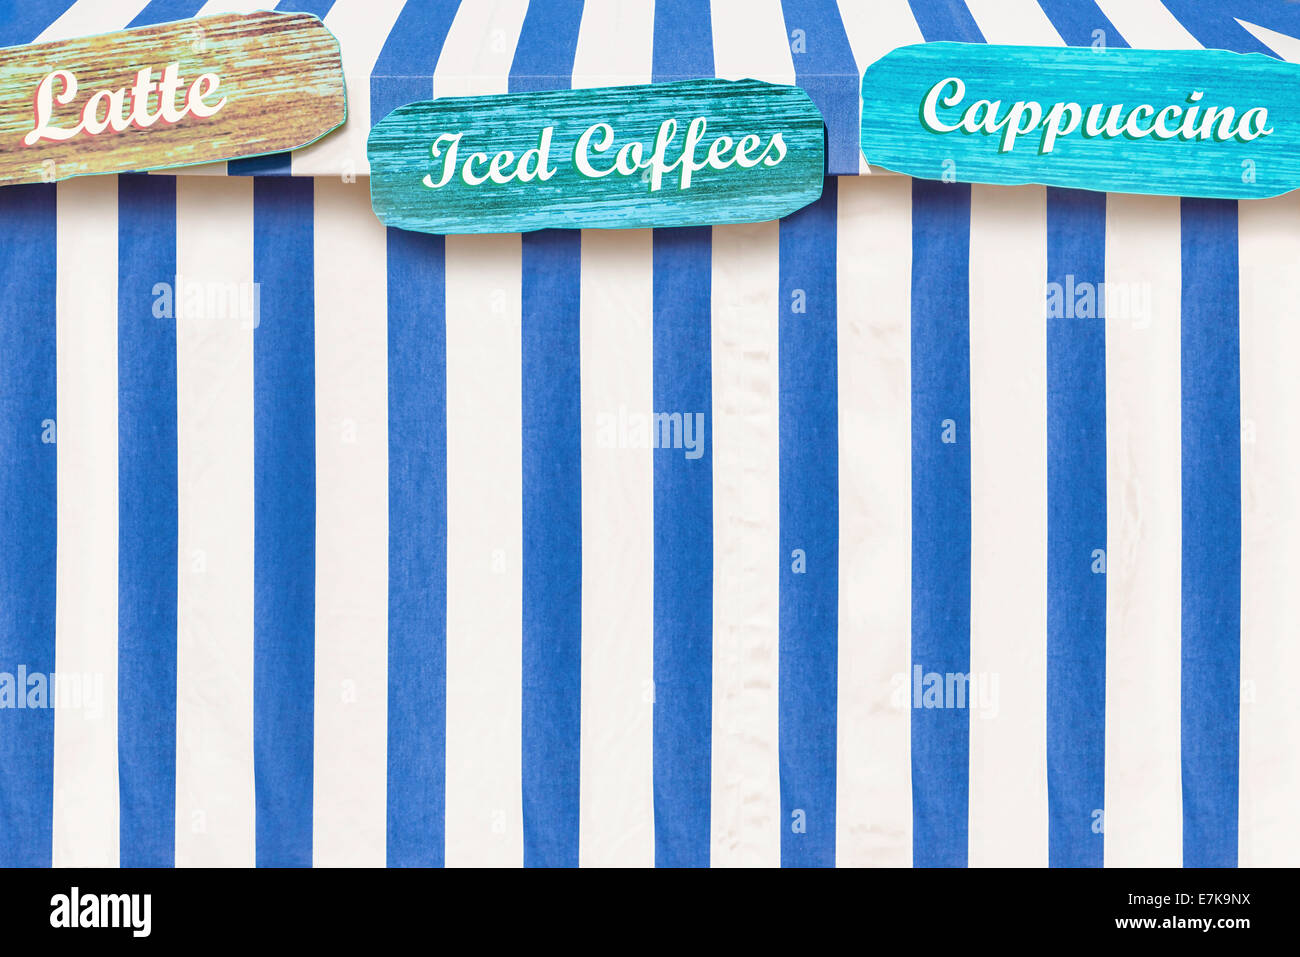 Iced Coffees Cappuccino Latte Advertised On A Circus Style Tent